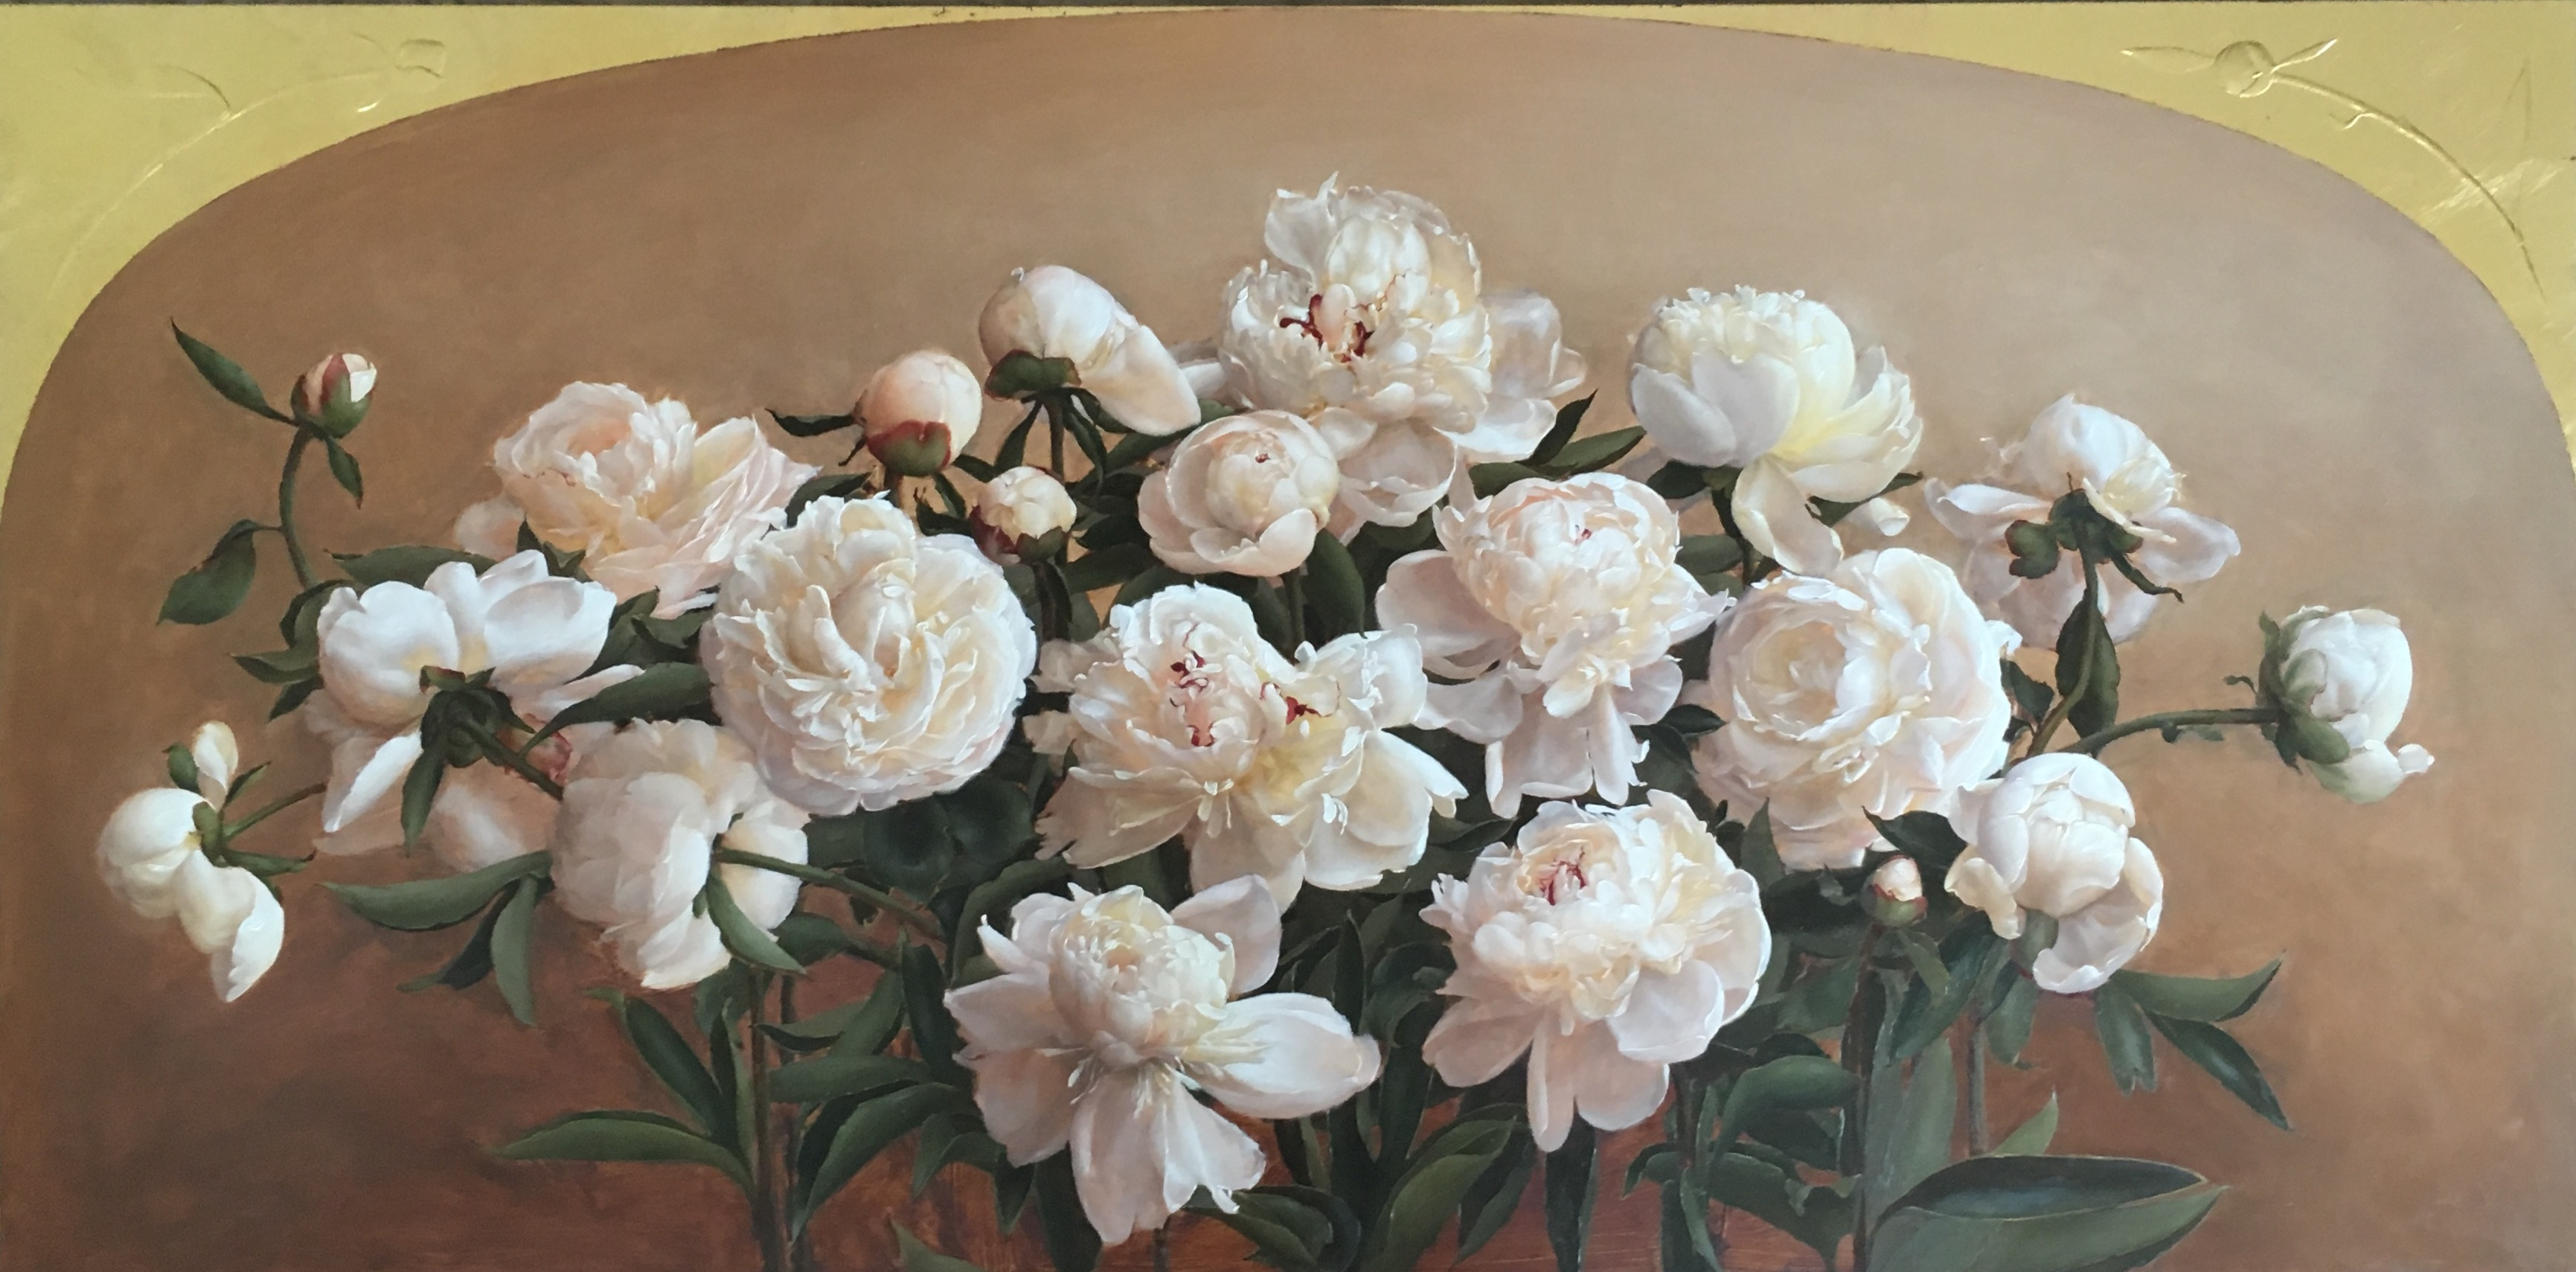 Indiana State Flower, White Peonies